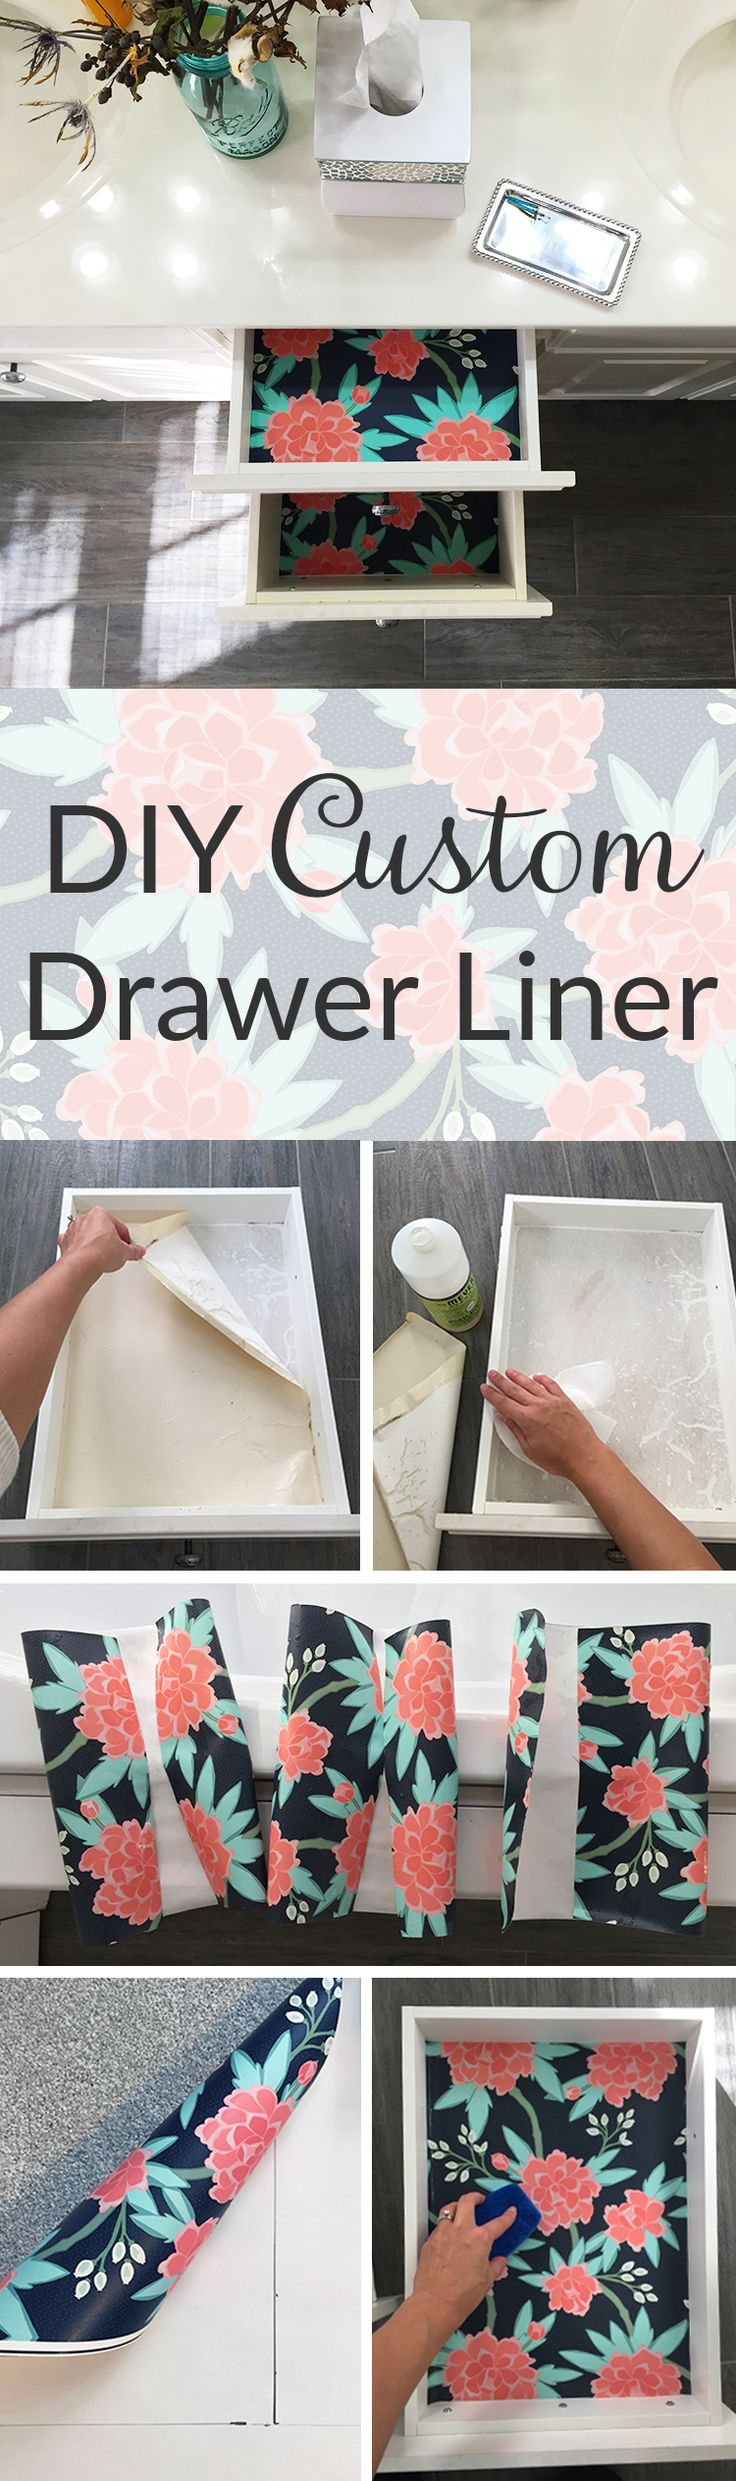 This easy DIY tutorial shows the quick steps from boring drawer to beautiful bold interior!    These custom drawer liners can brighten up any space and add some color to a drab room.  Click to see the easy DIY drawer liner tutorial.  Design by willowlanetextiles spoonflower.com/designs/3204448